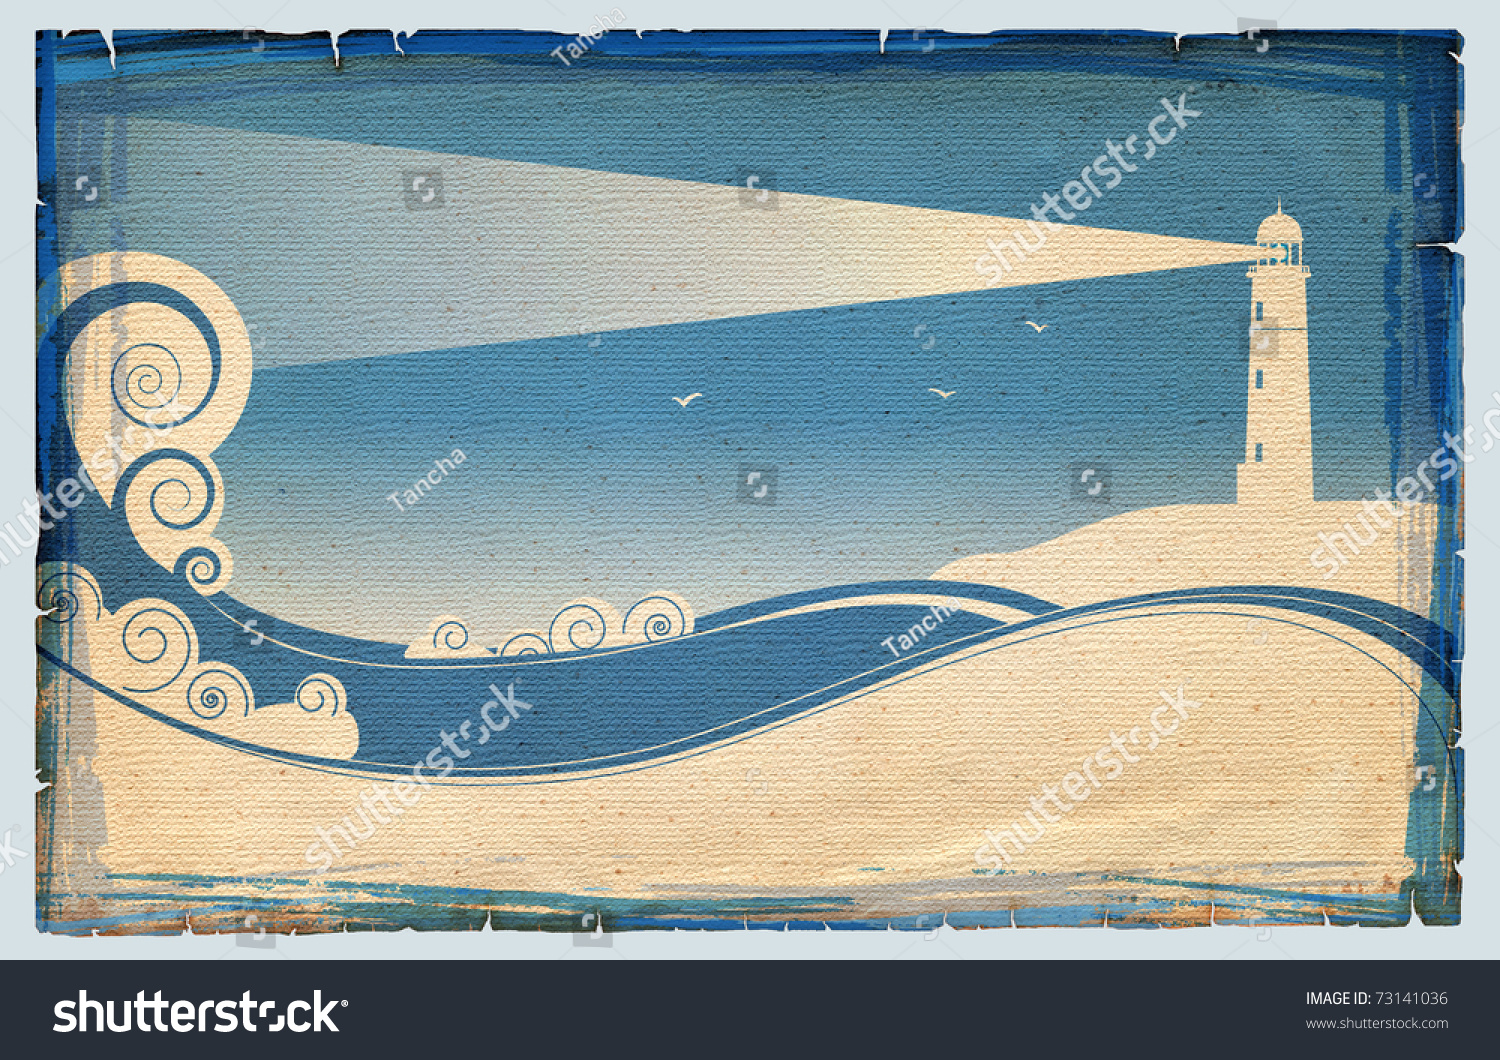 Symbols lighhouse sea landscape on old stock illustration 73141036 symbols of lighhouse in sea landscape on old paper texture biocorpaavc